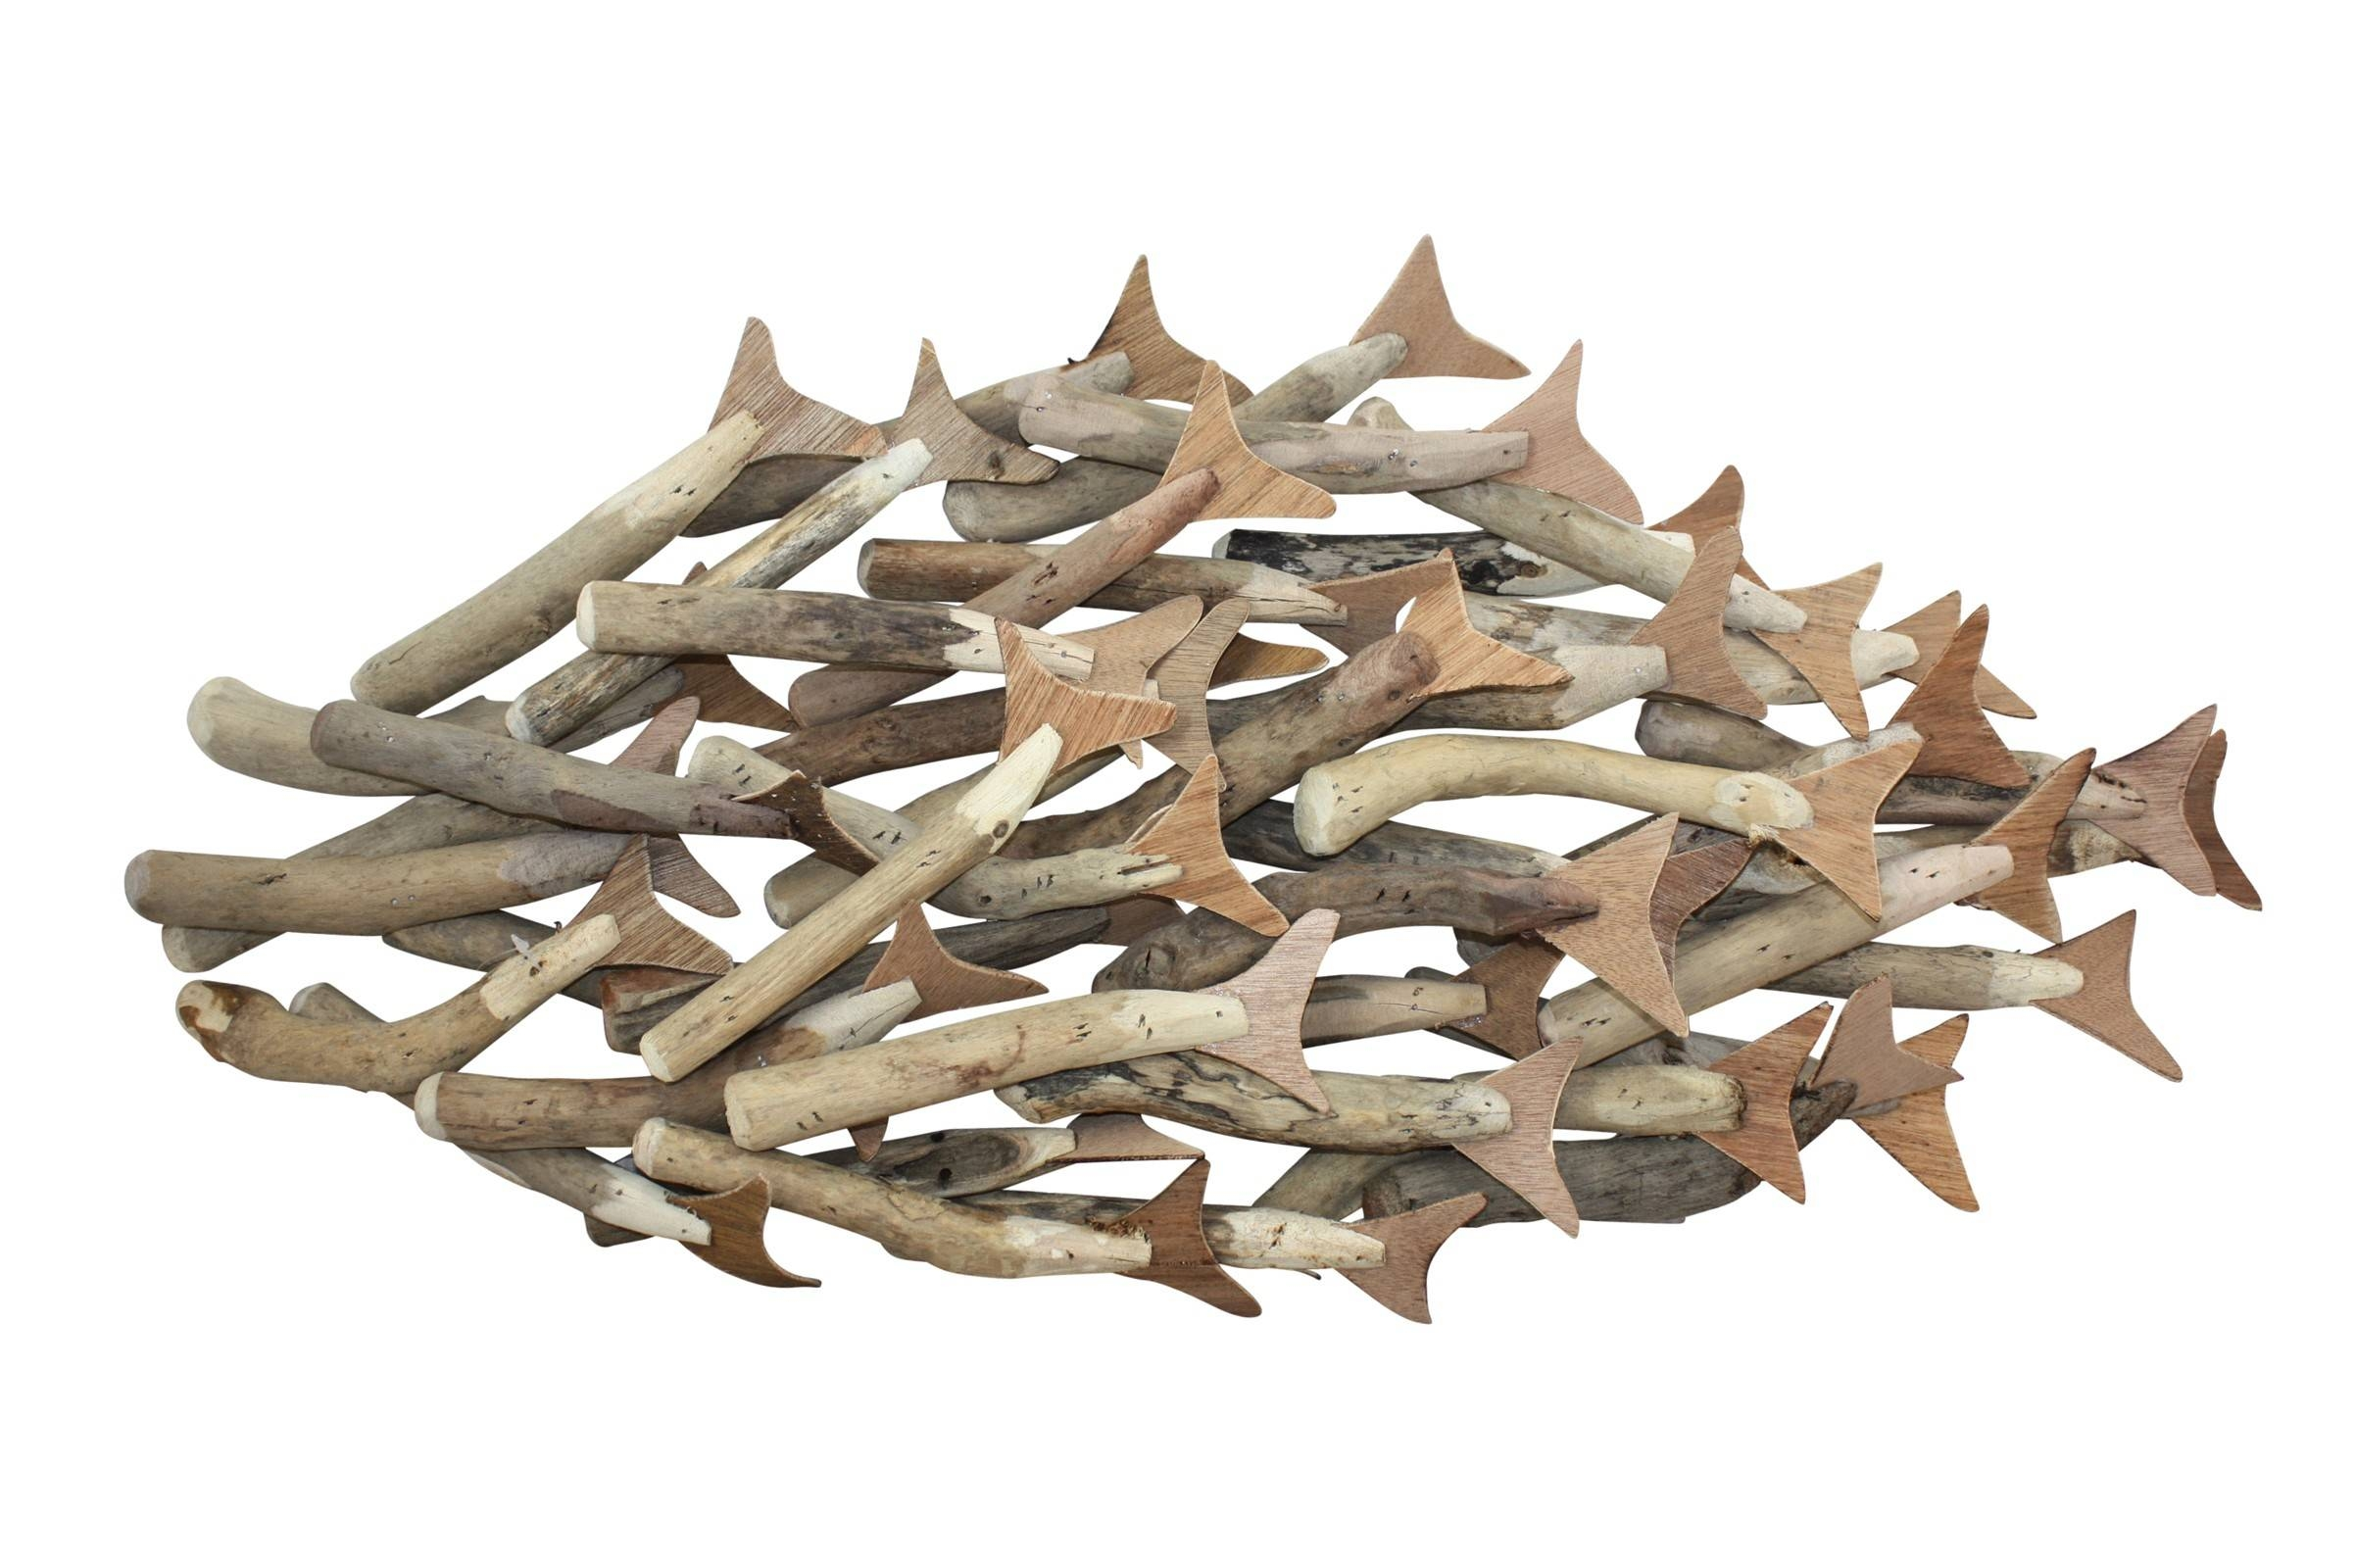 Surprising Fish Wall Art With Decor Metal Images New – Decoration In Current Shoal Of Fish Metal Wall Art (View 3 of 30)